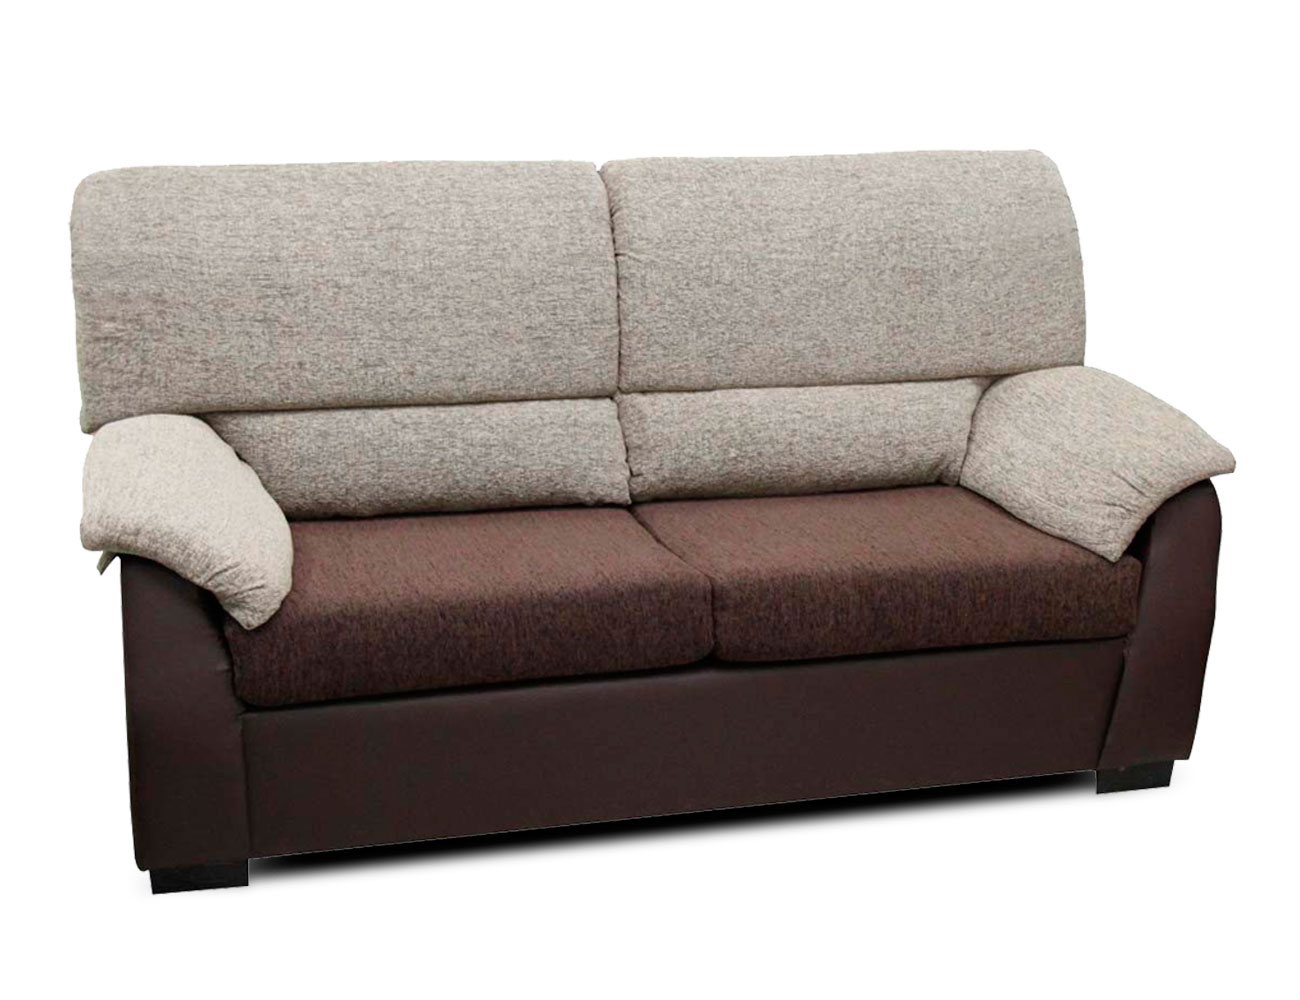 Sof de 3 plazas barato 15245 factory del mueble utrera for Sofas 2 plazas baratos madrid